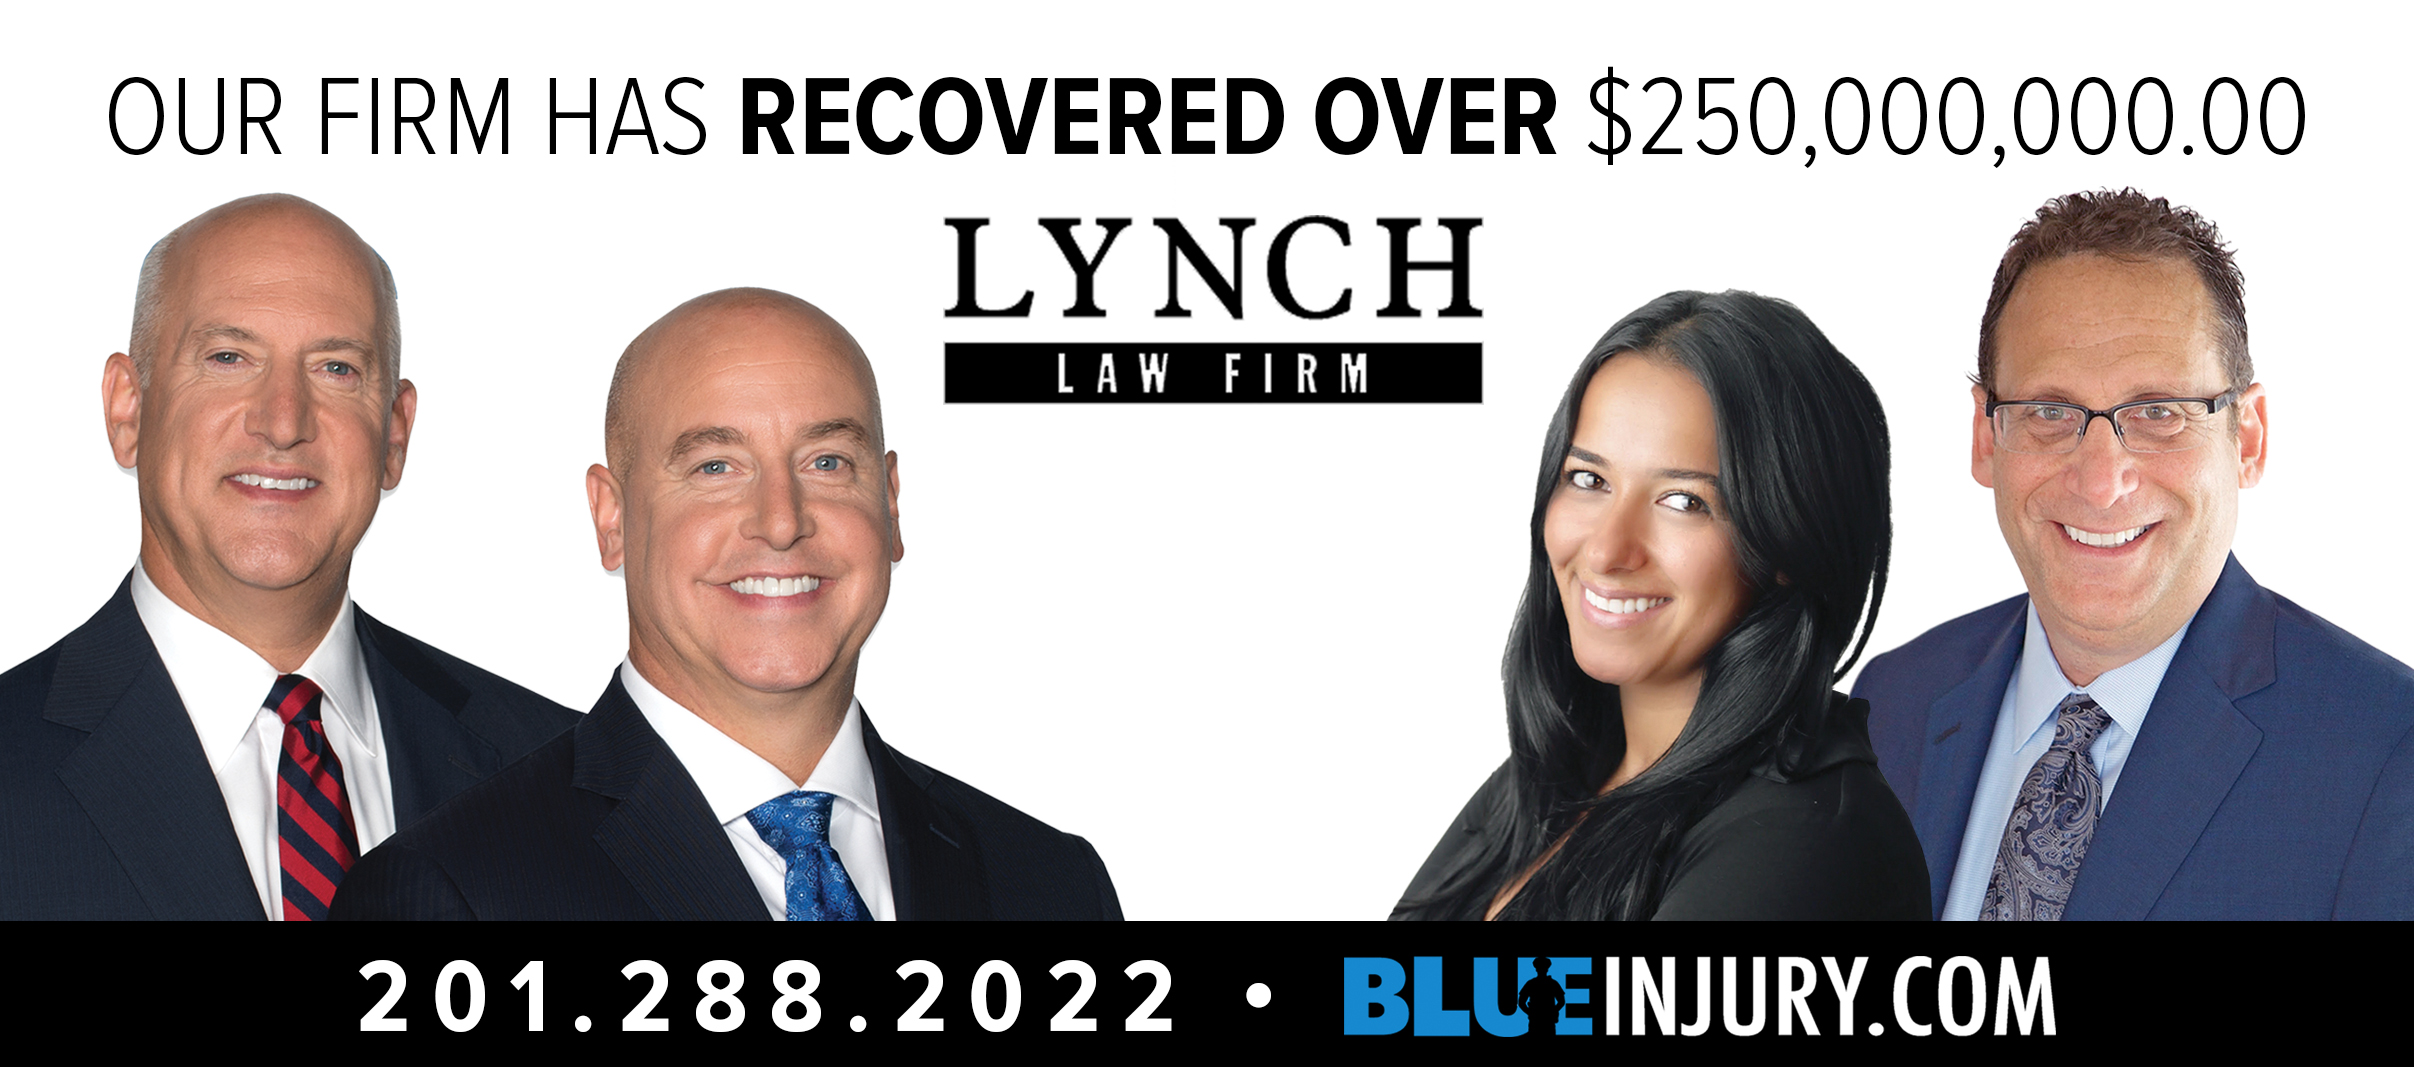 Lynch+Full+Banner+Ad.jpg